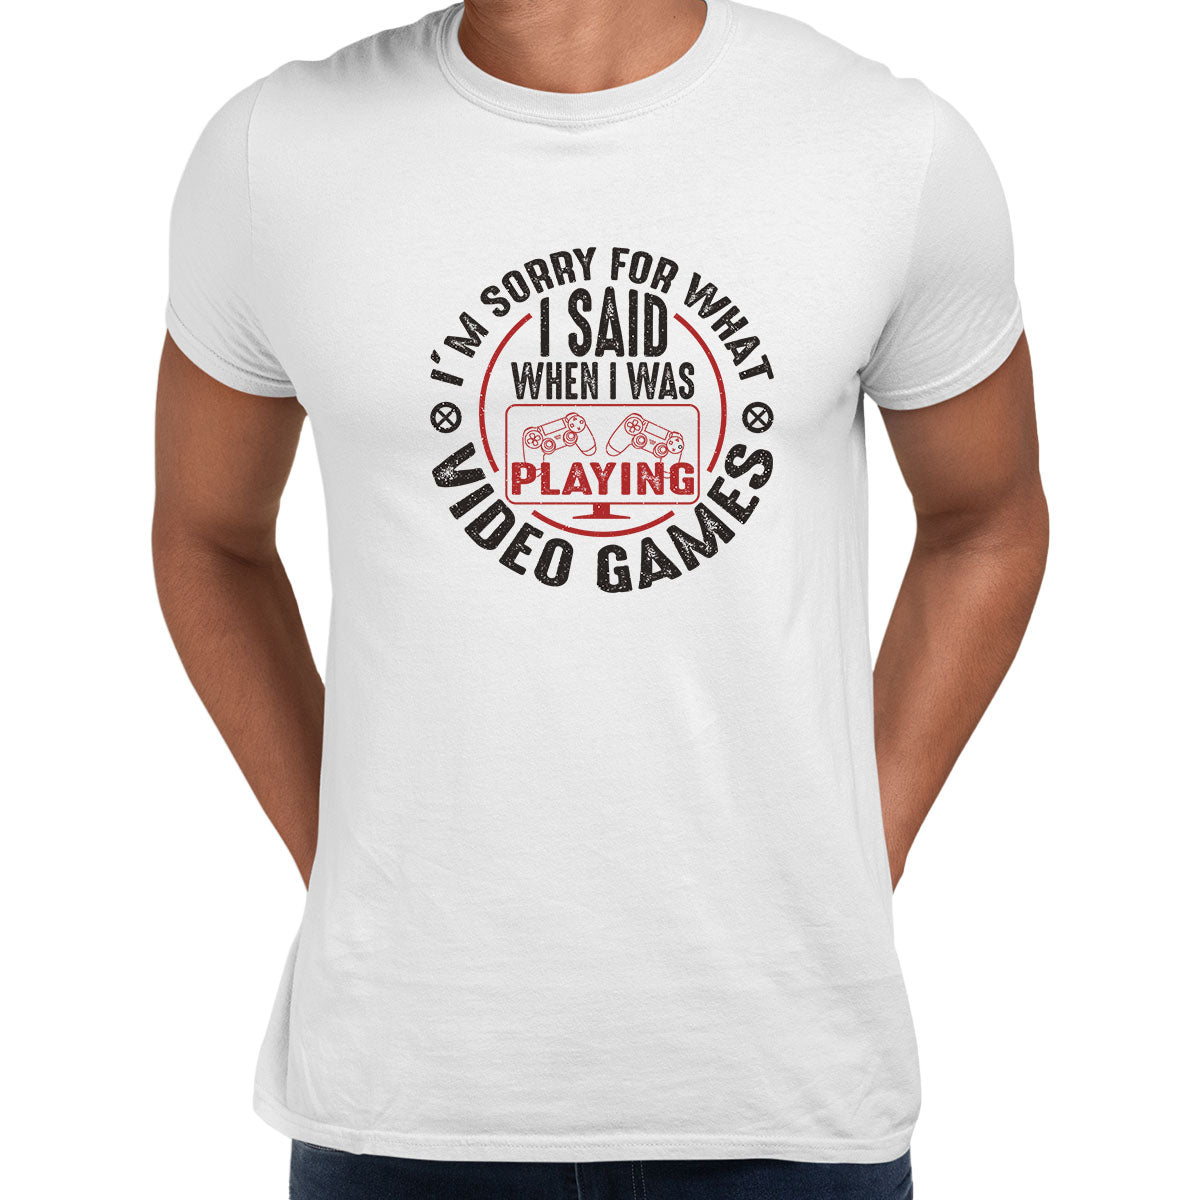 Mens Gaming T-Shirt Old School Gamer Retro Video I am Sorry What I said Unisex White T-Shirt